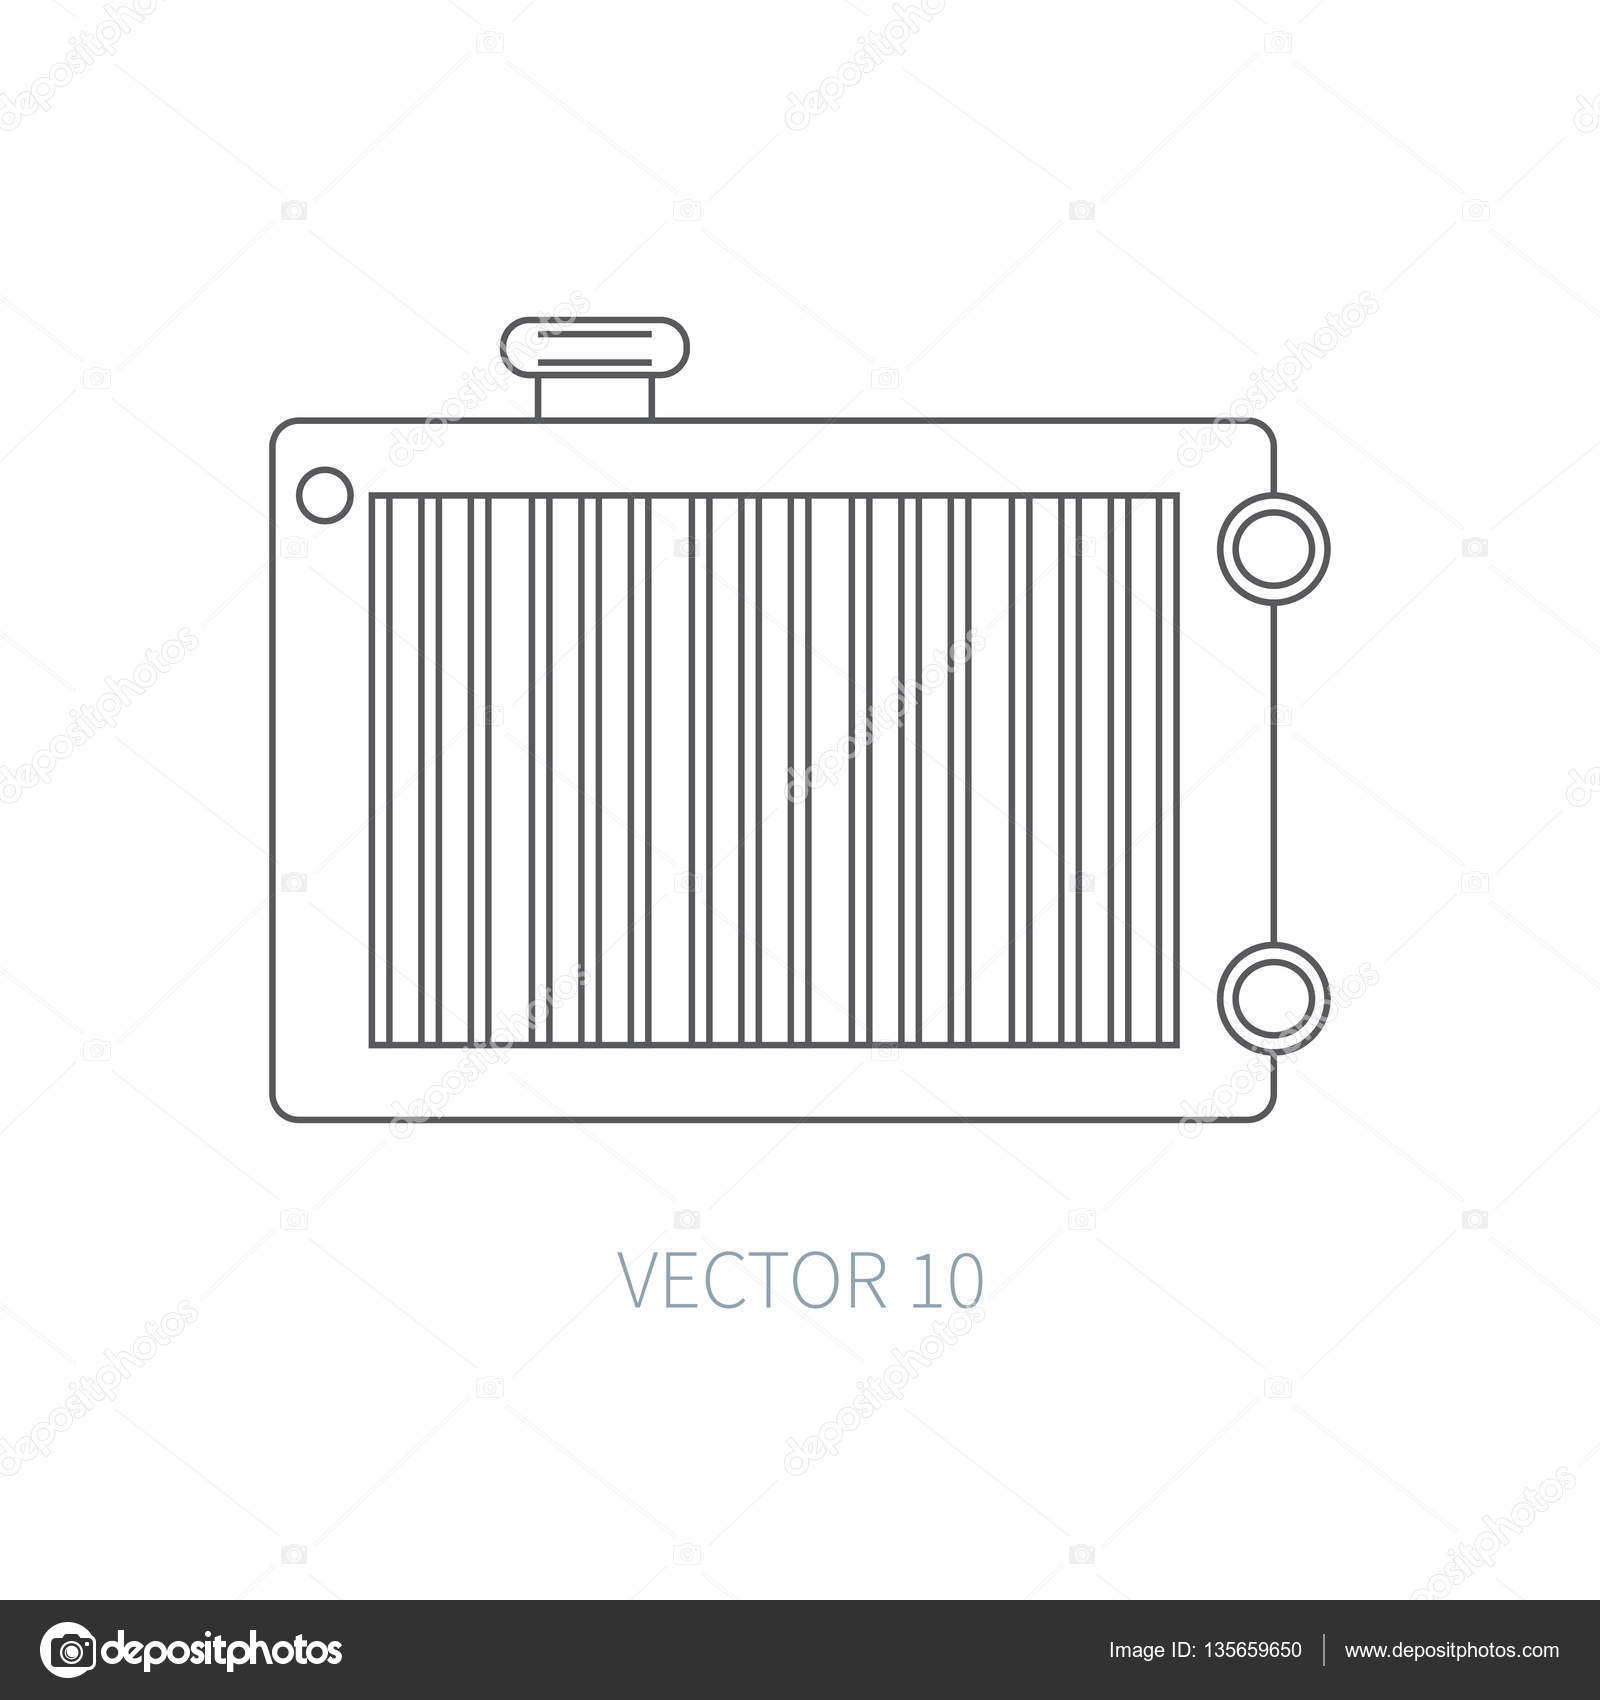 Design of a car radiator - Line Flat Vector Icon Car Repair Part Radiator Internal Combustion Engine Elements Industrial Cartoon Style Illustration Element For Your Design